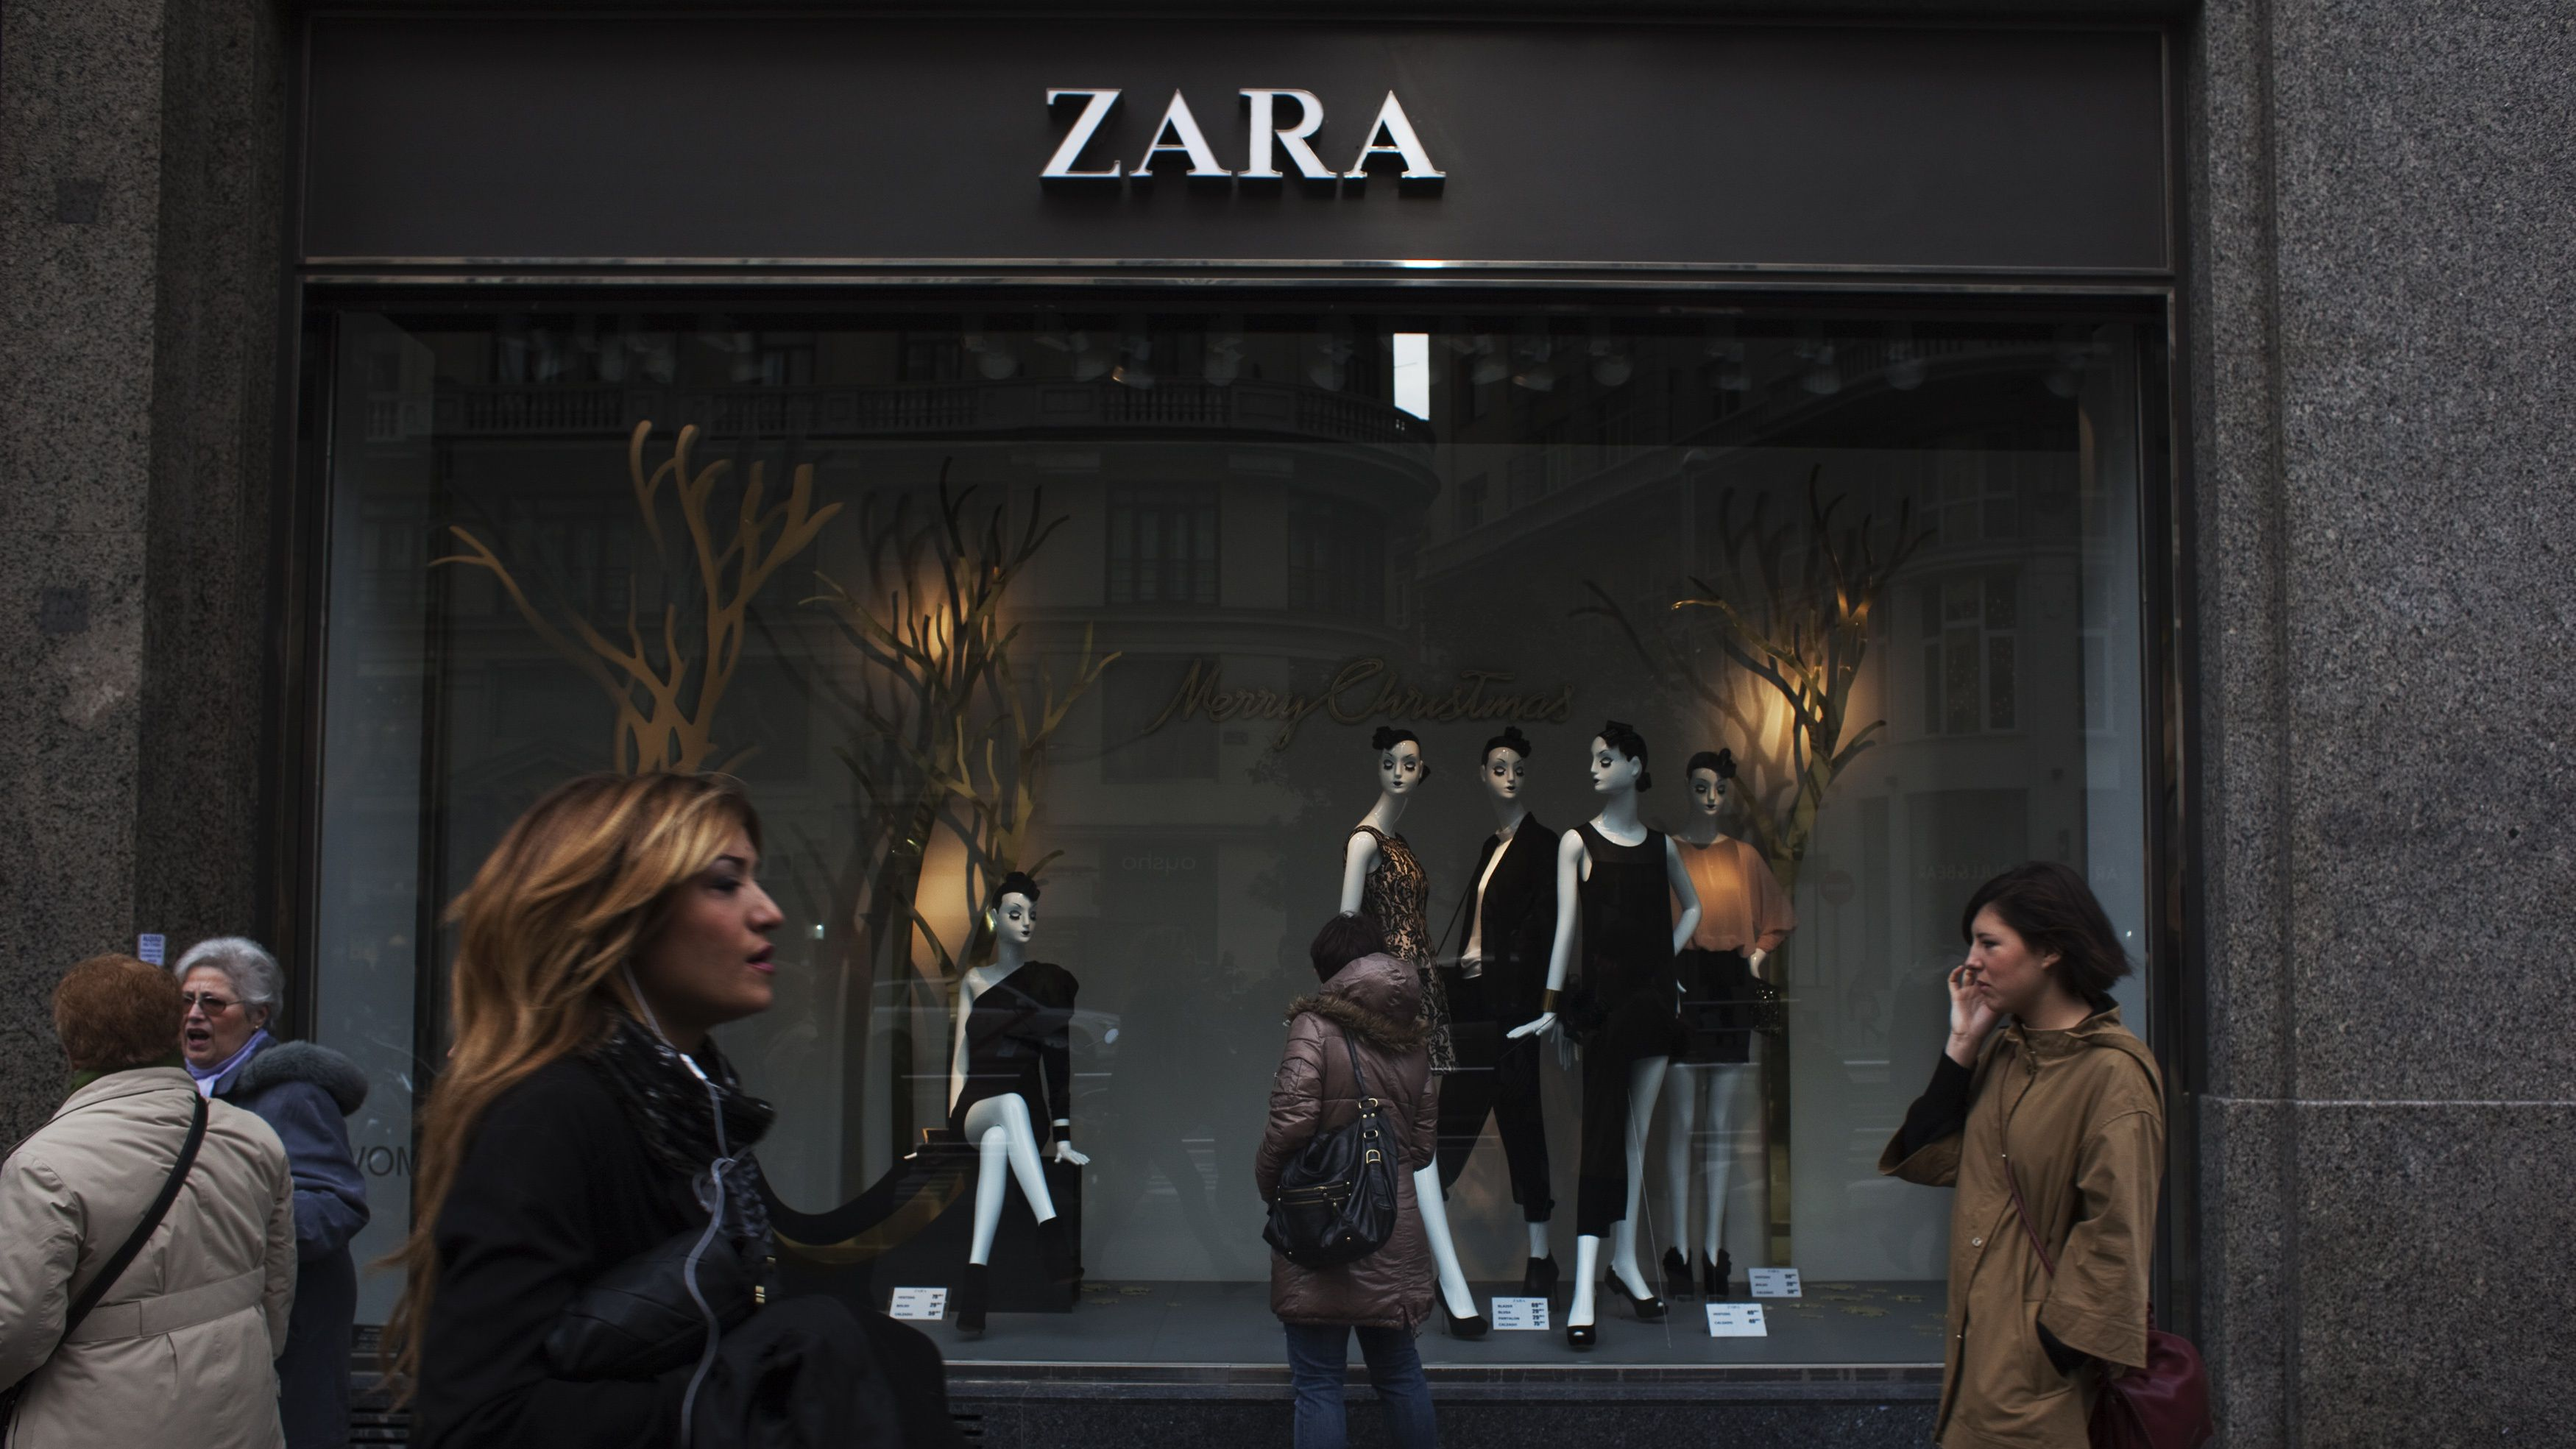 People walk by one of Zara's stores in central Madrid December 14, 2011. Sales growth at Spain's Inditex, the world's largest clothing retailer and owner of the popular Zara label, eased in the third quarter as the euro zone debt crisis rattled shoppers and unseasonably good autumn weather altered spending patterns. But the company, founded by Spain's richest man Amancio Ortega, still cheered the market with evidence it remains capable of outperforming rivals. The group reported a surprise 100 basis point increase in its profit margin and said sales growth in the fourth quarter had recovered.